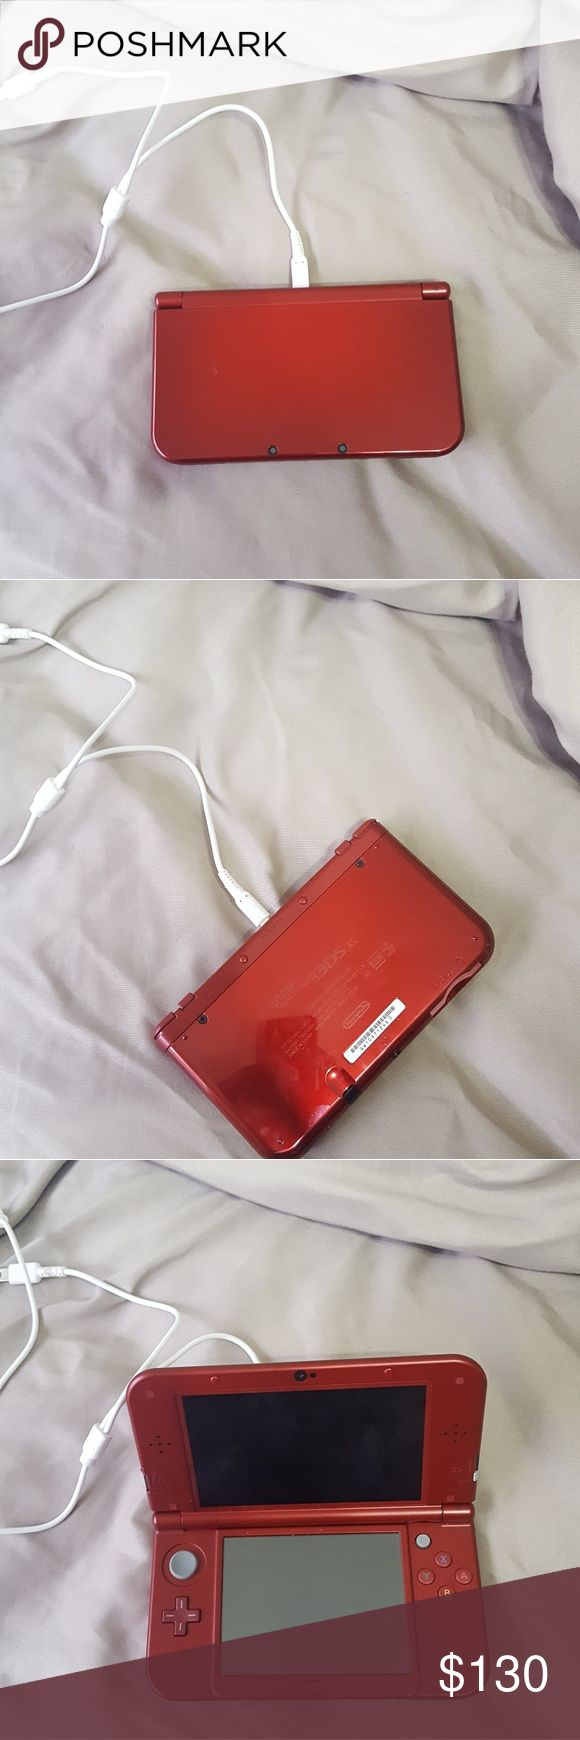 New Nintendo 3DS XL It is brand new with no scratches and it is in good condition. Nintendo Other